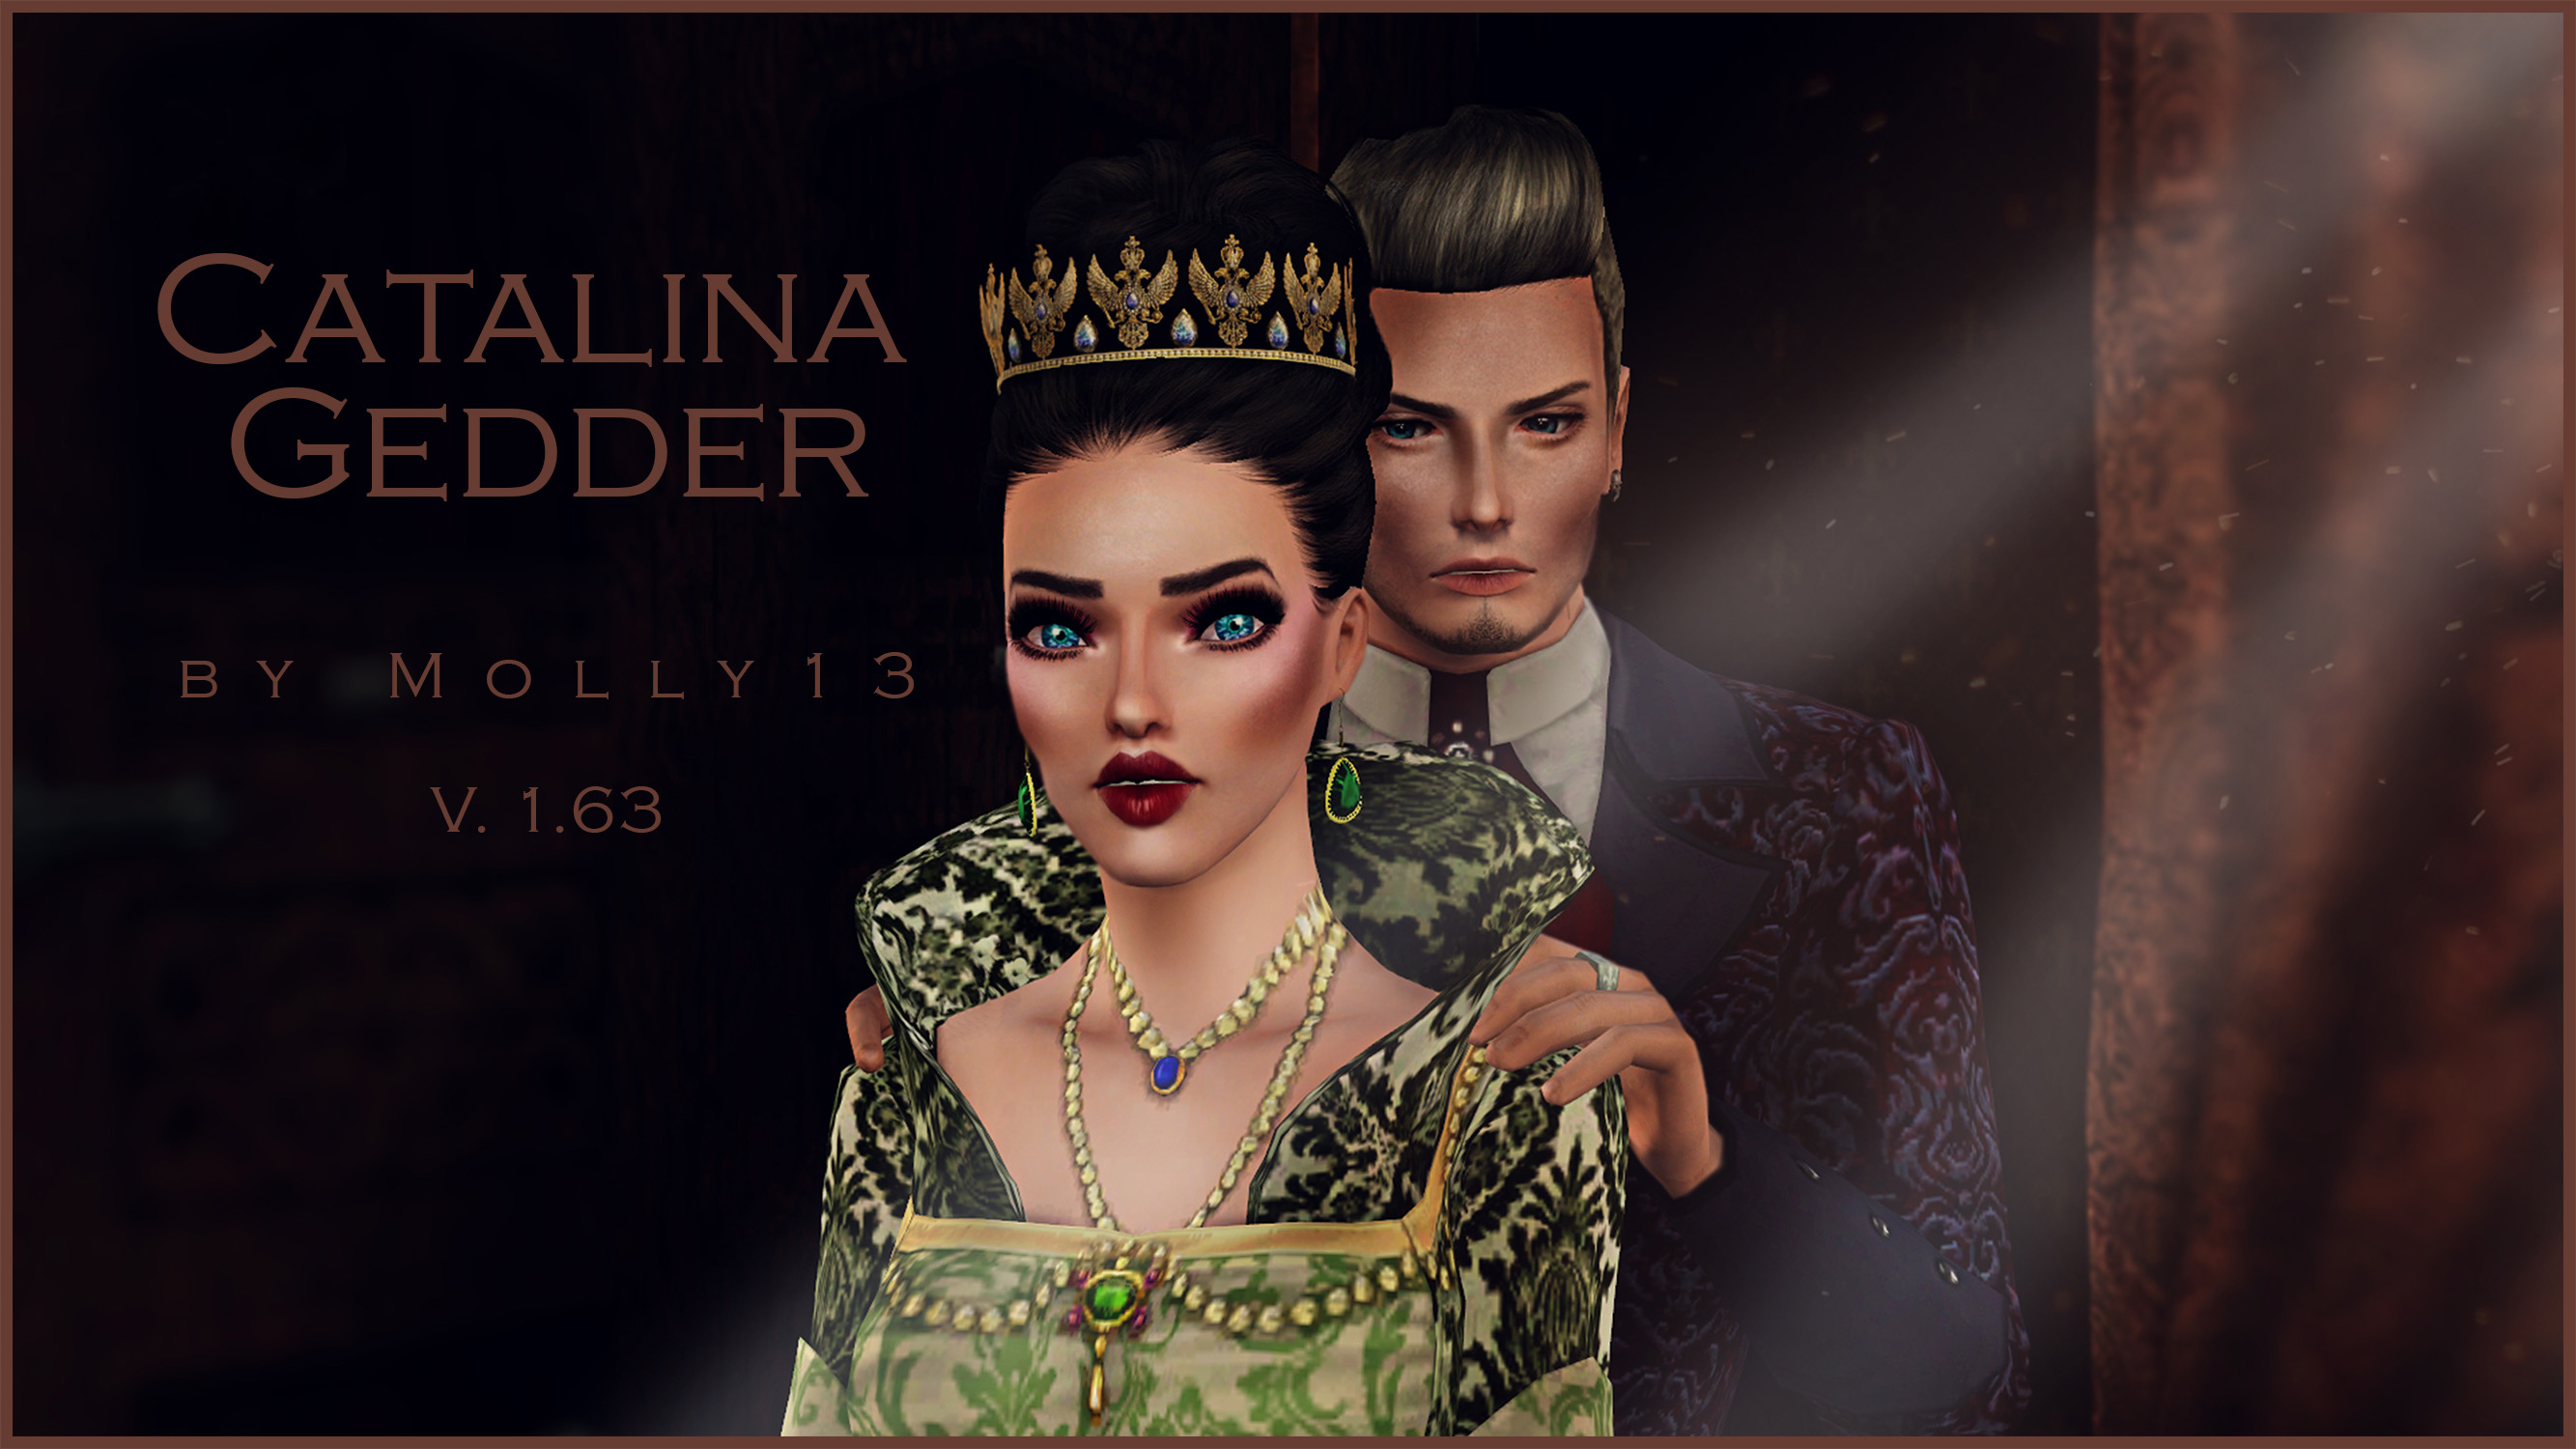 Catalina Gedder by Molly13